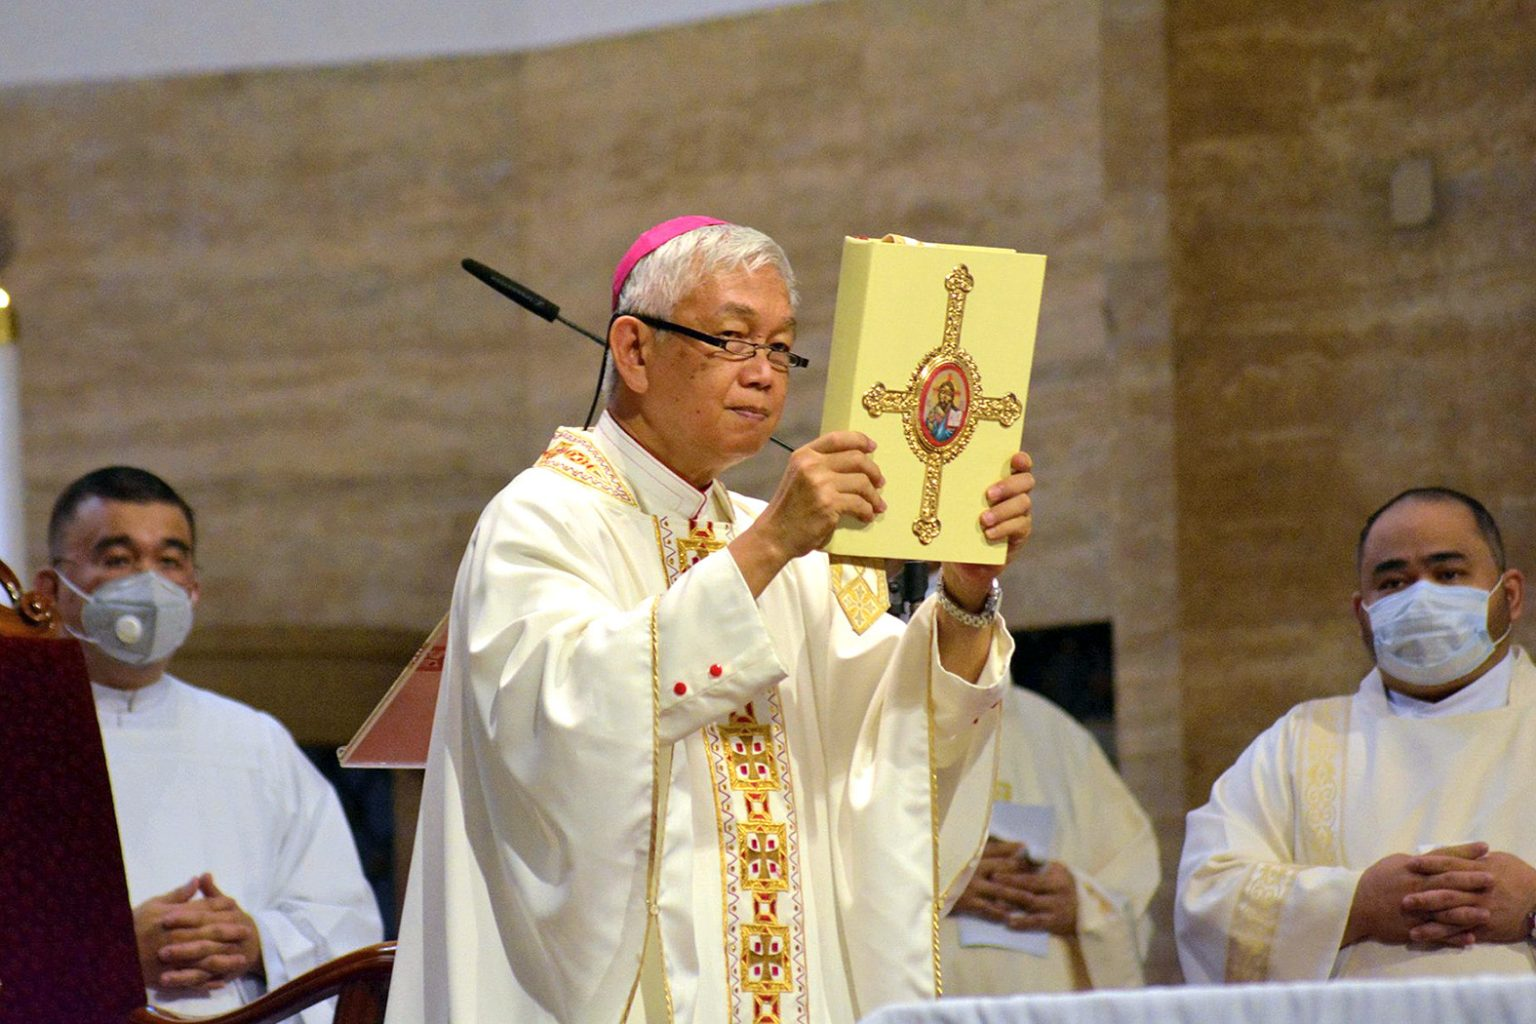 Bishop: Don't be afraid to act against injustices